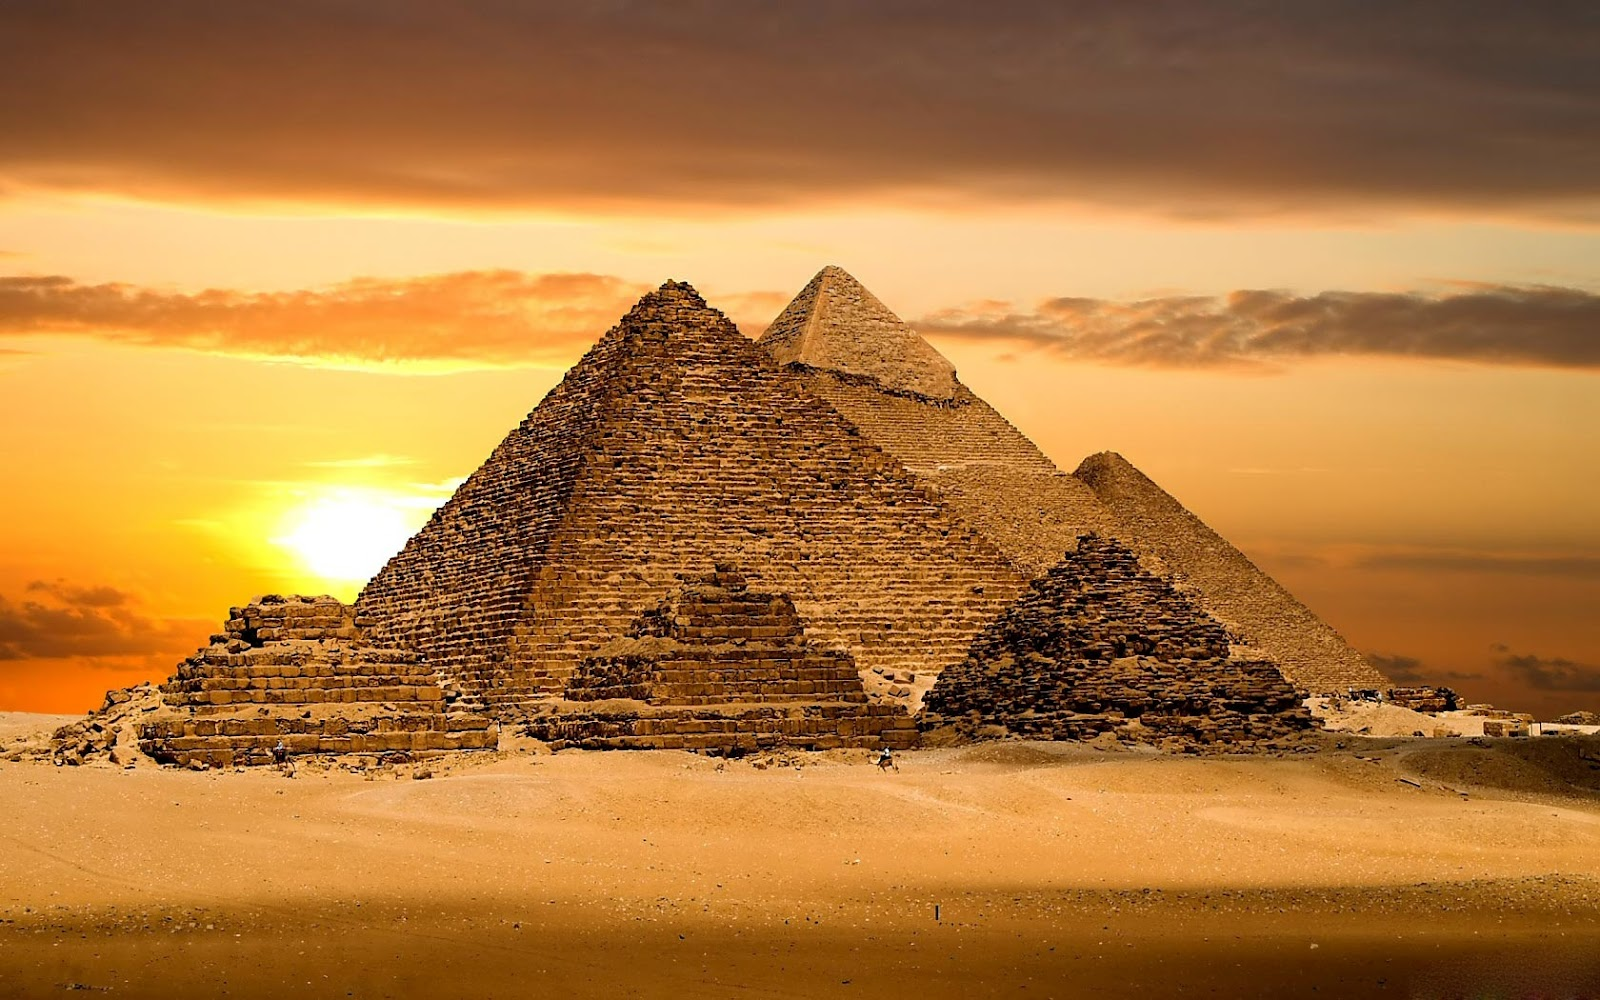 egypt the pyramids The shape of egyptian pyramids is thought to represent the primordial mound from which the egyptians believed the earth was created the shape of a pyramid is thought to be representative of.